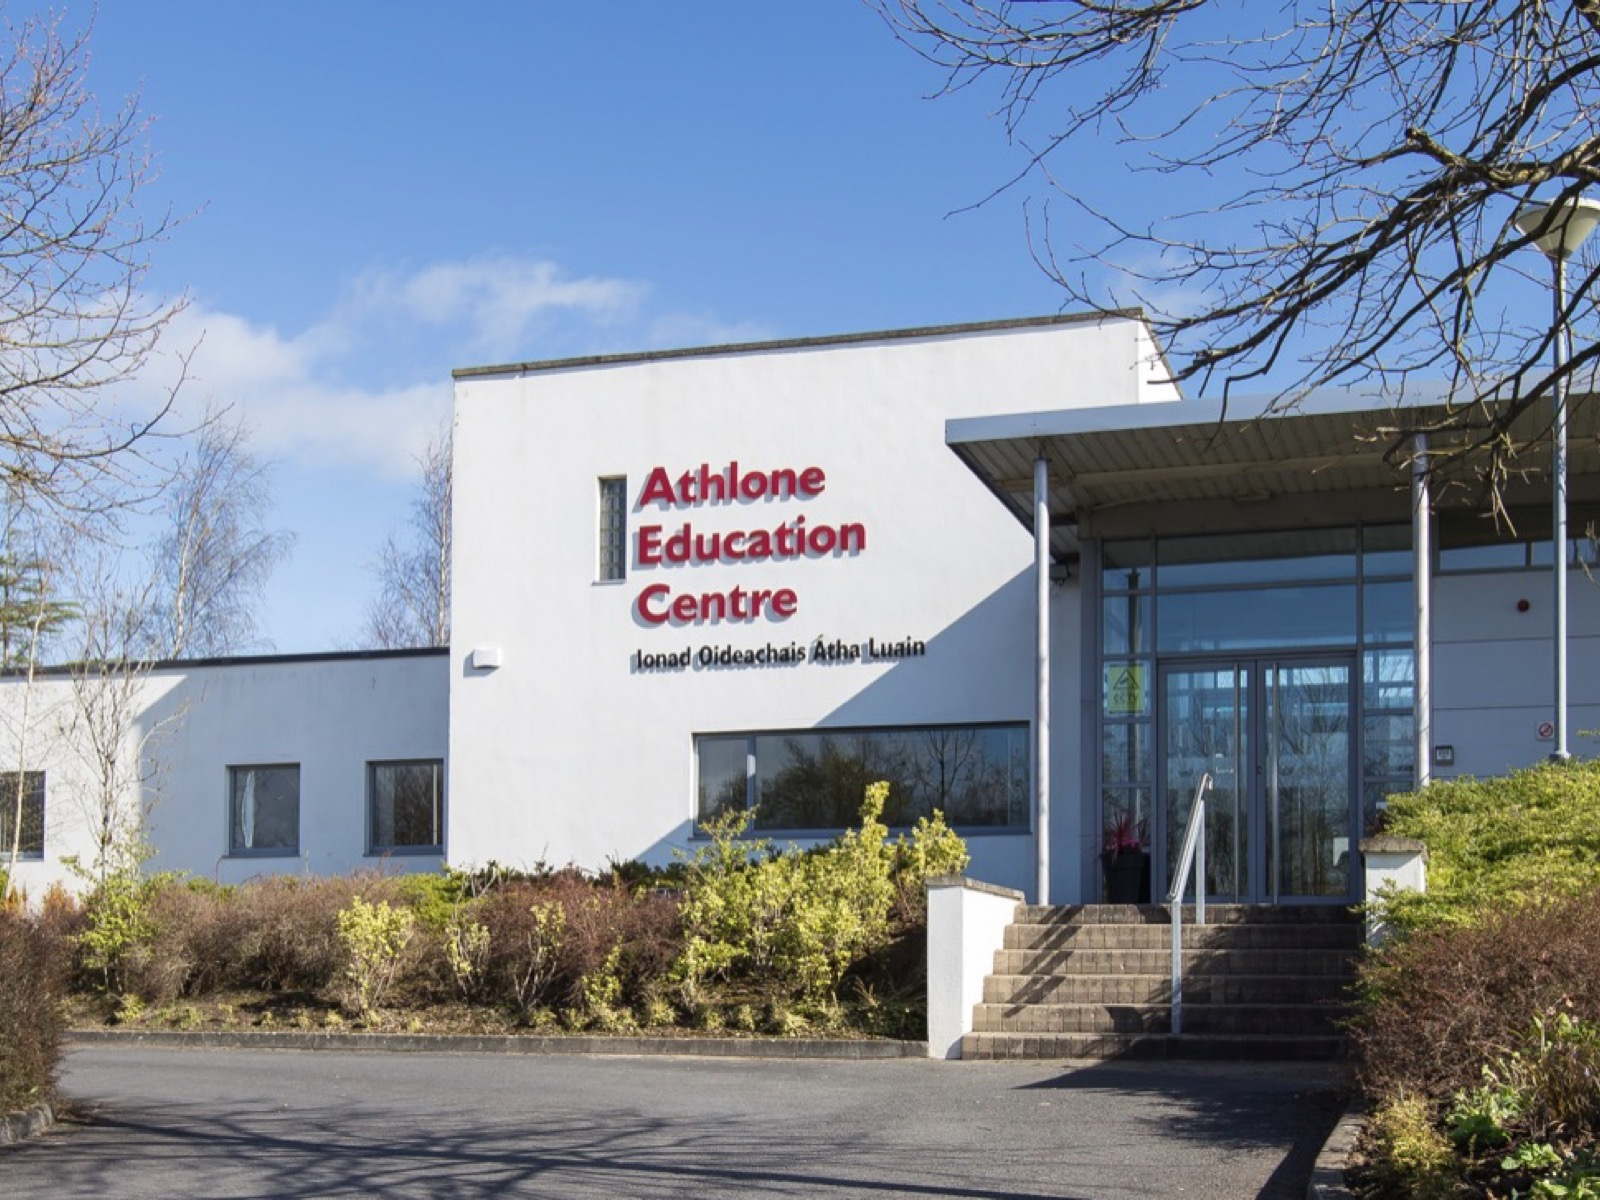 Athlone 60-external4 - Athlone Education